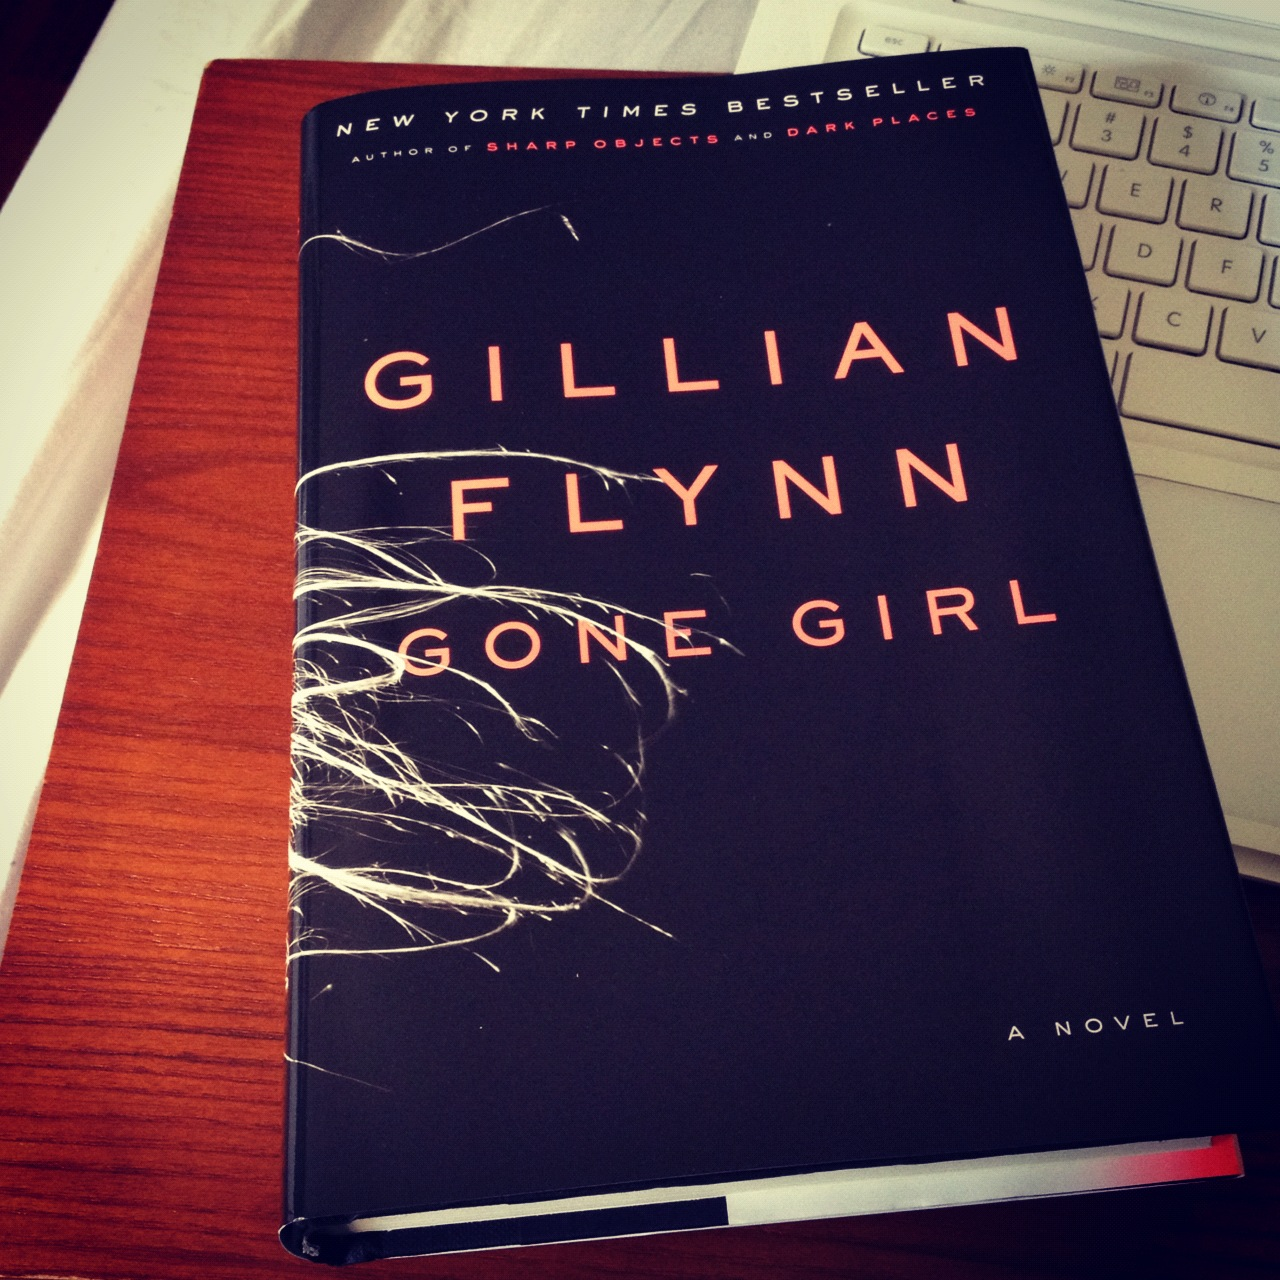 gone girl by gillian flynn Gone girl is film adaption of the novel by the same name by gillian flynn directed by david fincher, the film was released to theaters october 3rd, 2014 and debuted on dvd on january 13th, 2015.